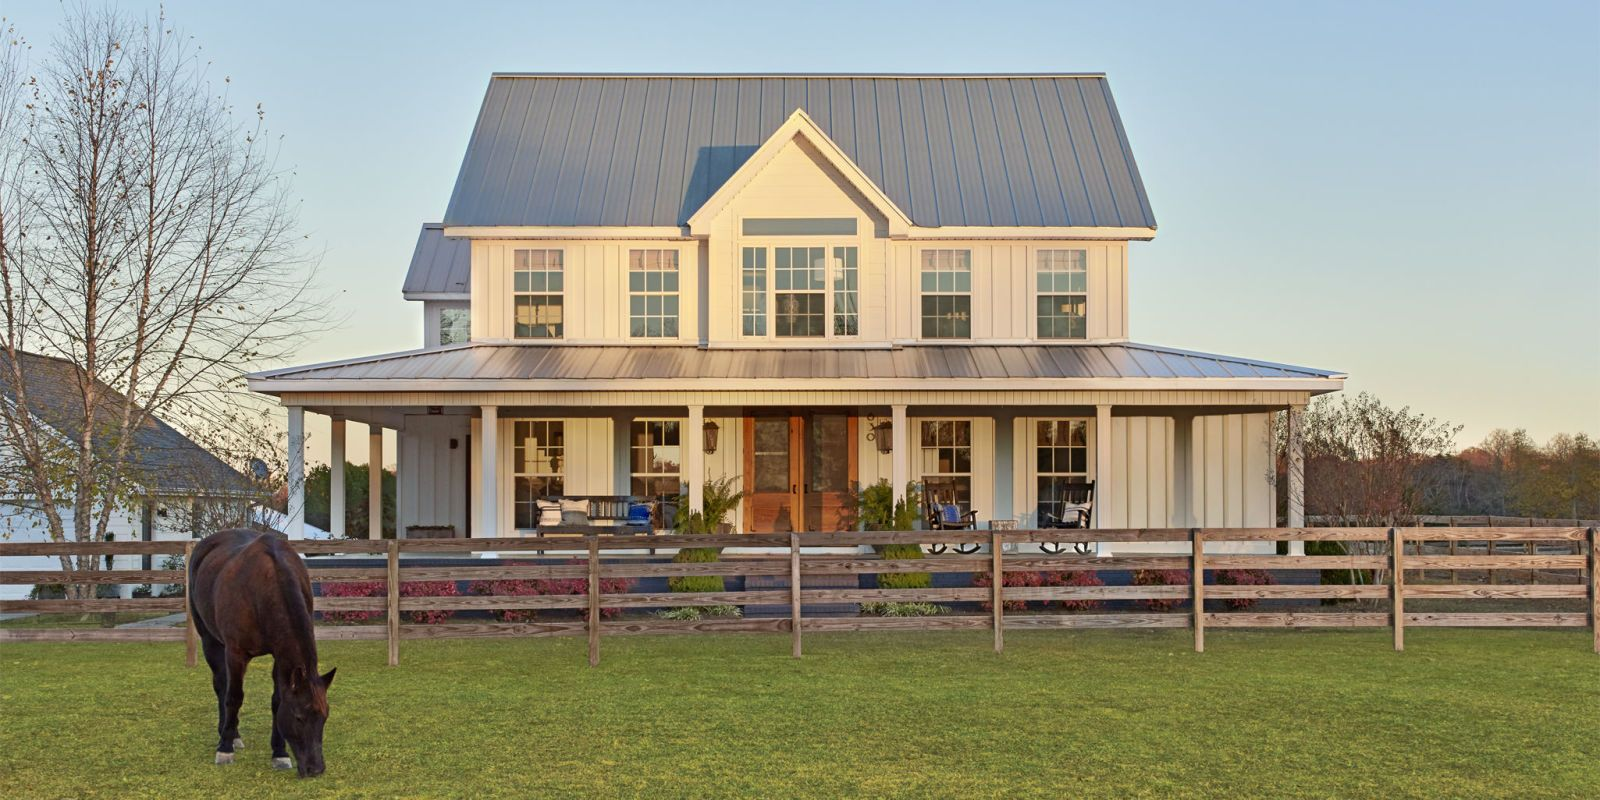 This couple turned a suburban cookie cutter home into a Old country farmhouse